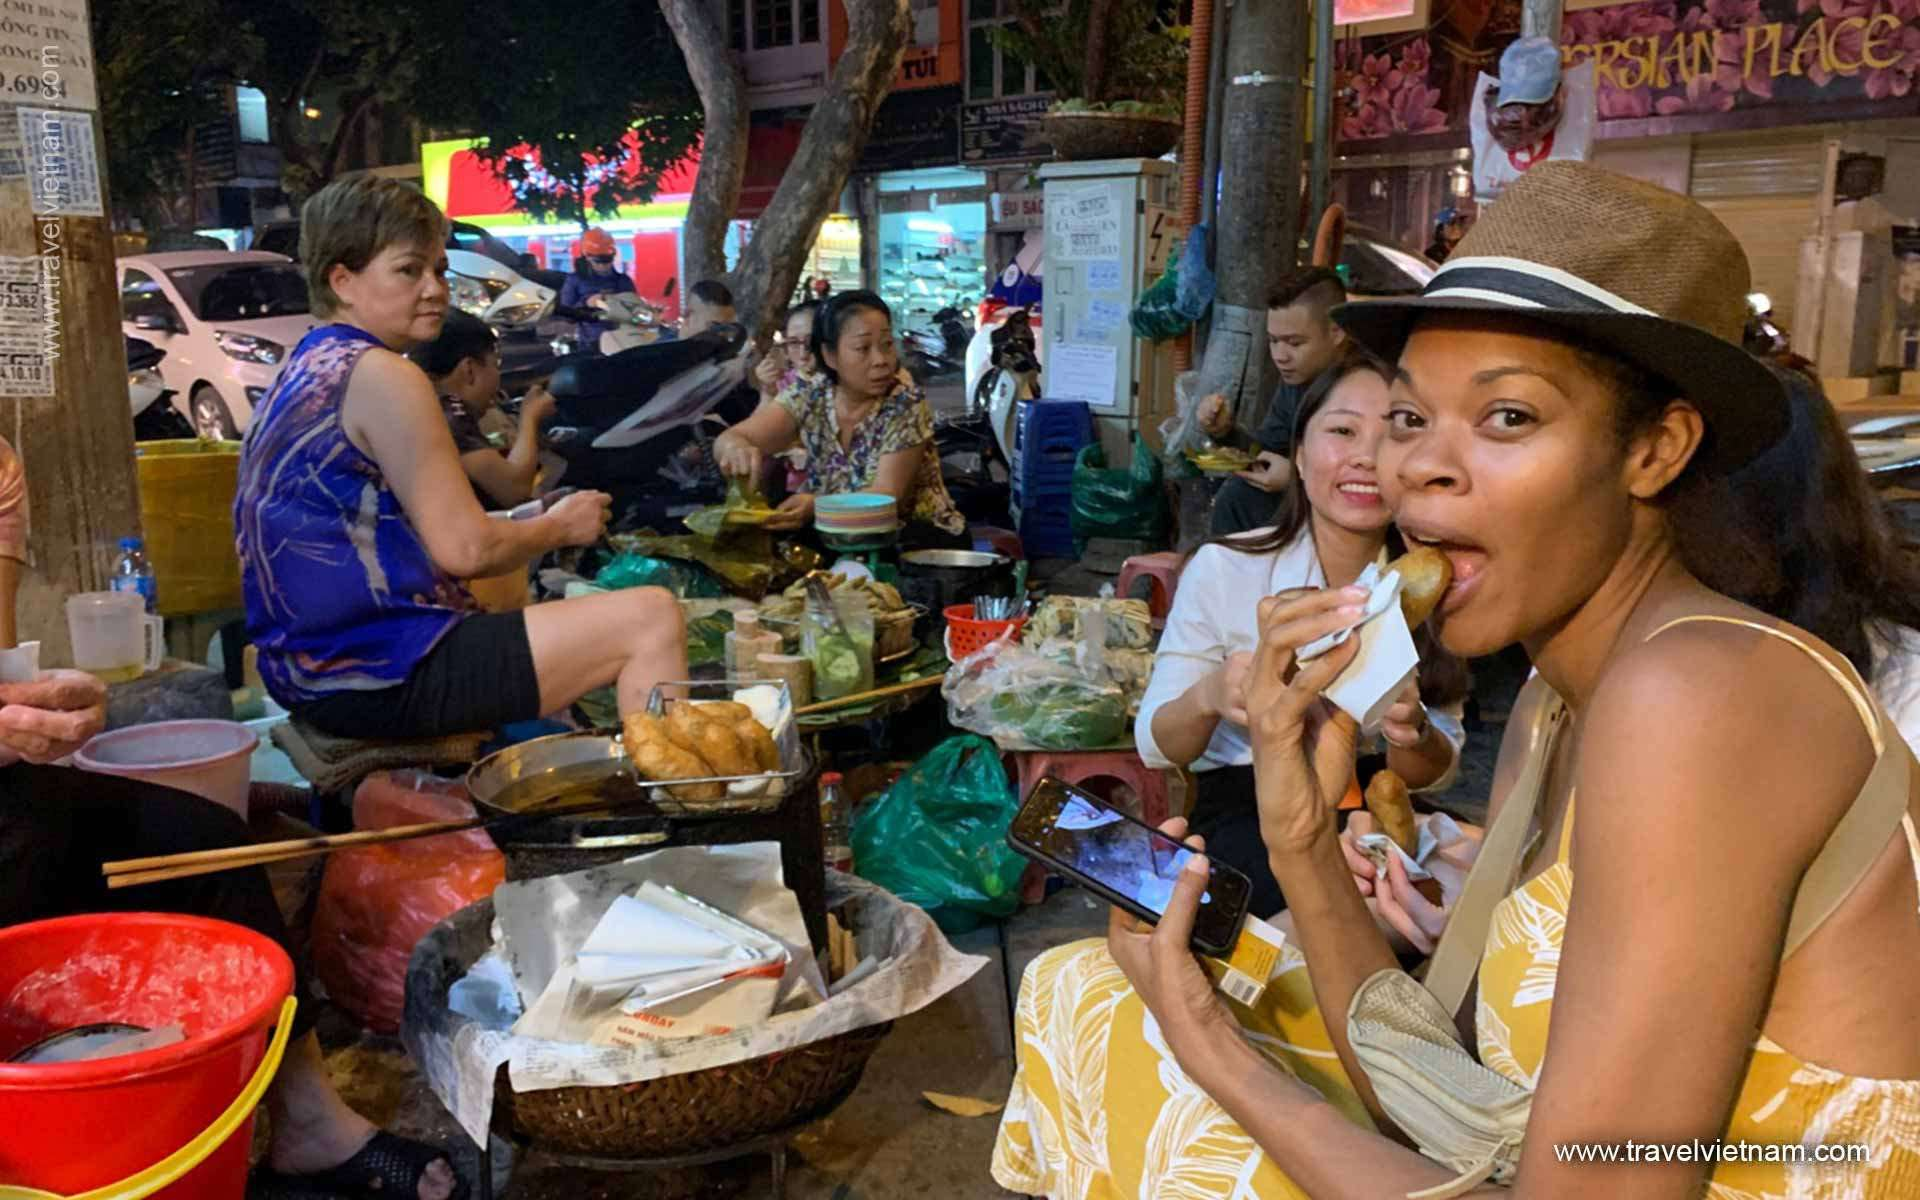 Taste street food in Hanoi